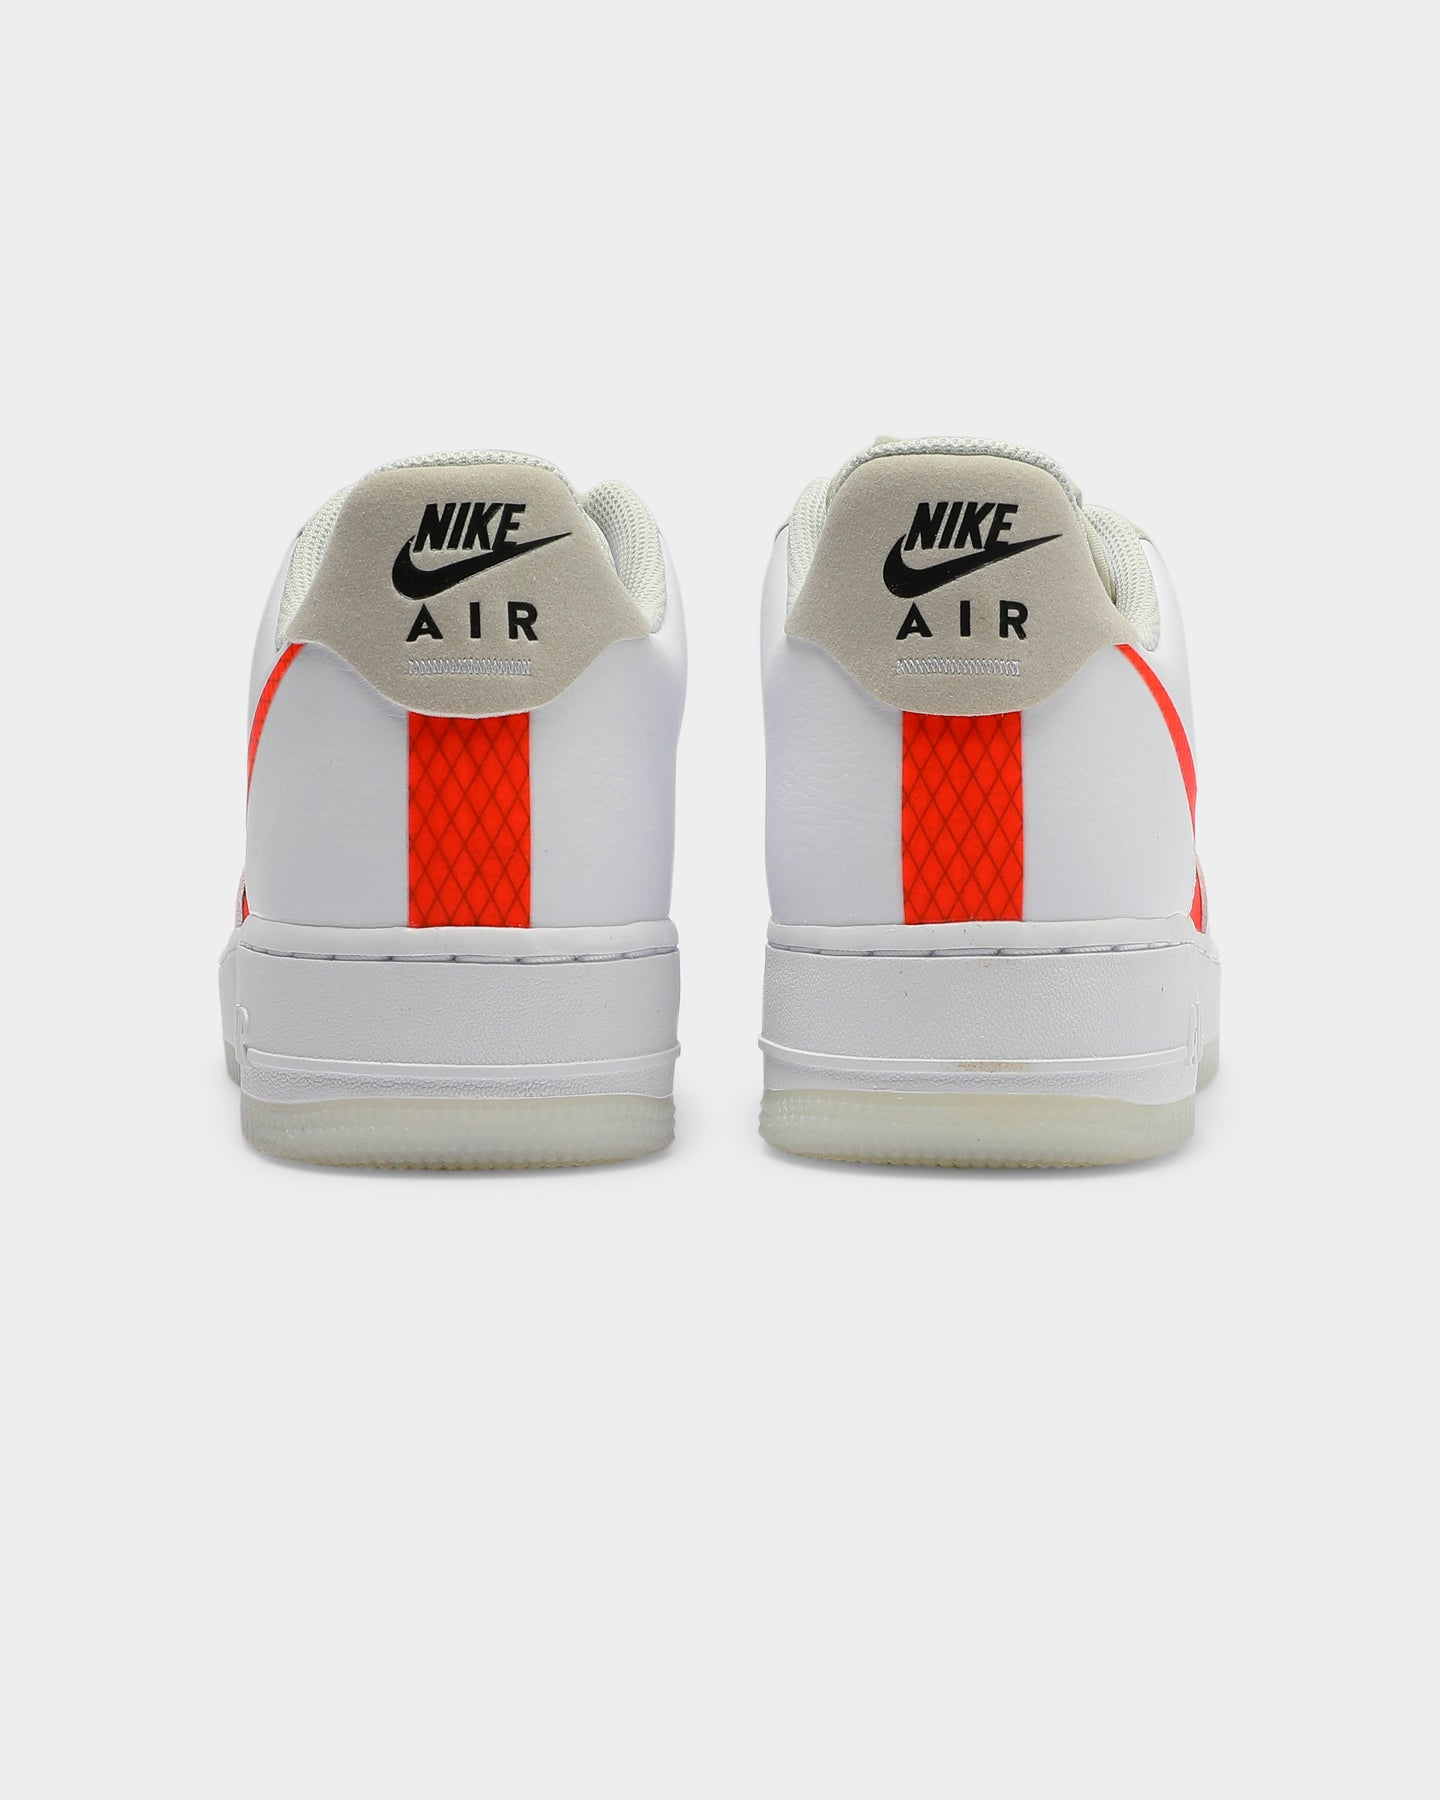 NIKE AIR FORCE 1 HIGH '07 LV8 Sport NBA Mens Motion High Street Sneakers